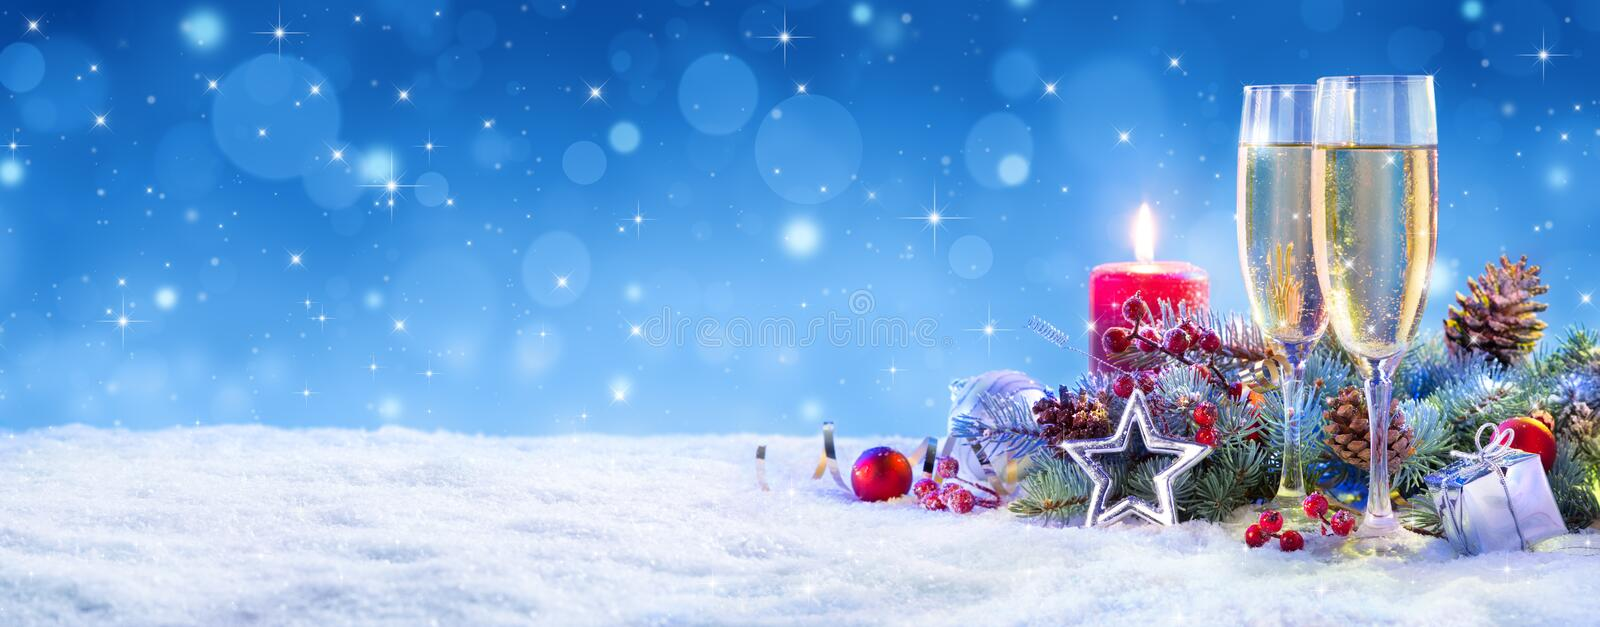 Champagne For Christmas Celebration royalty free stock images